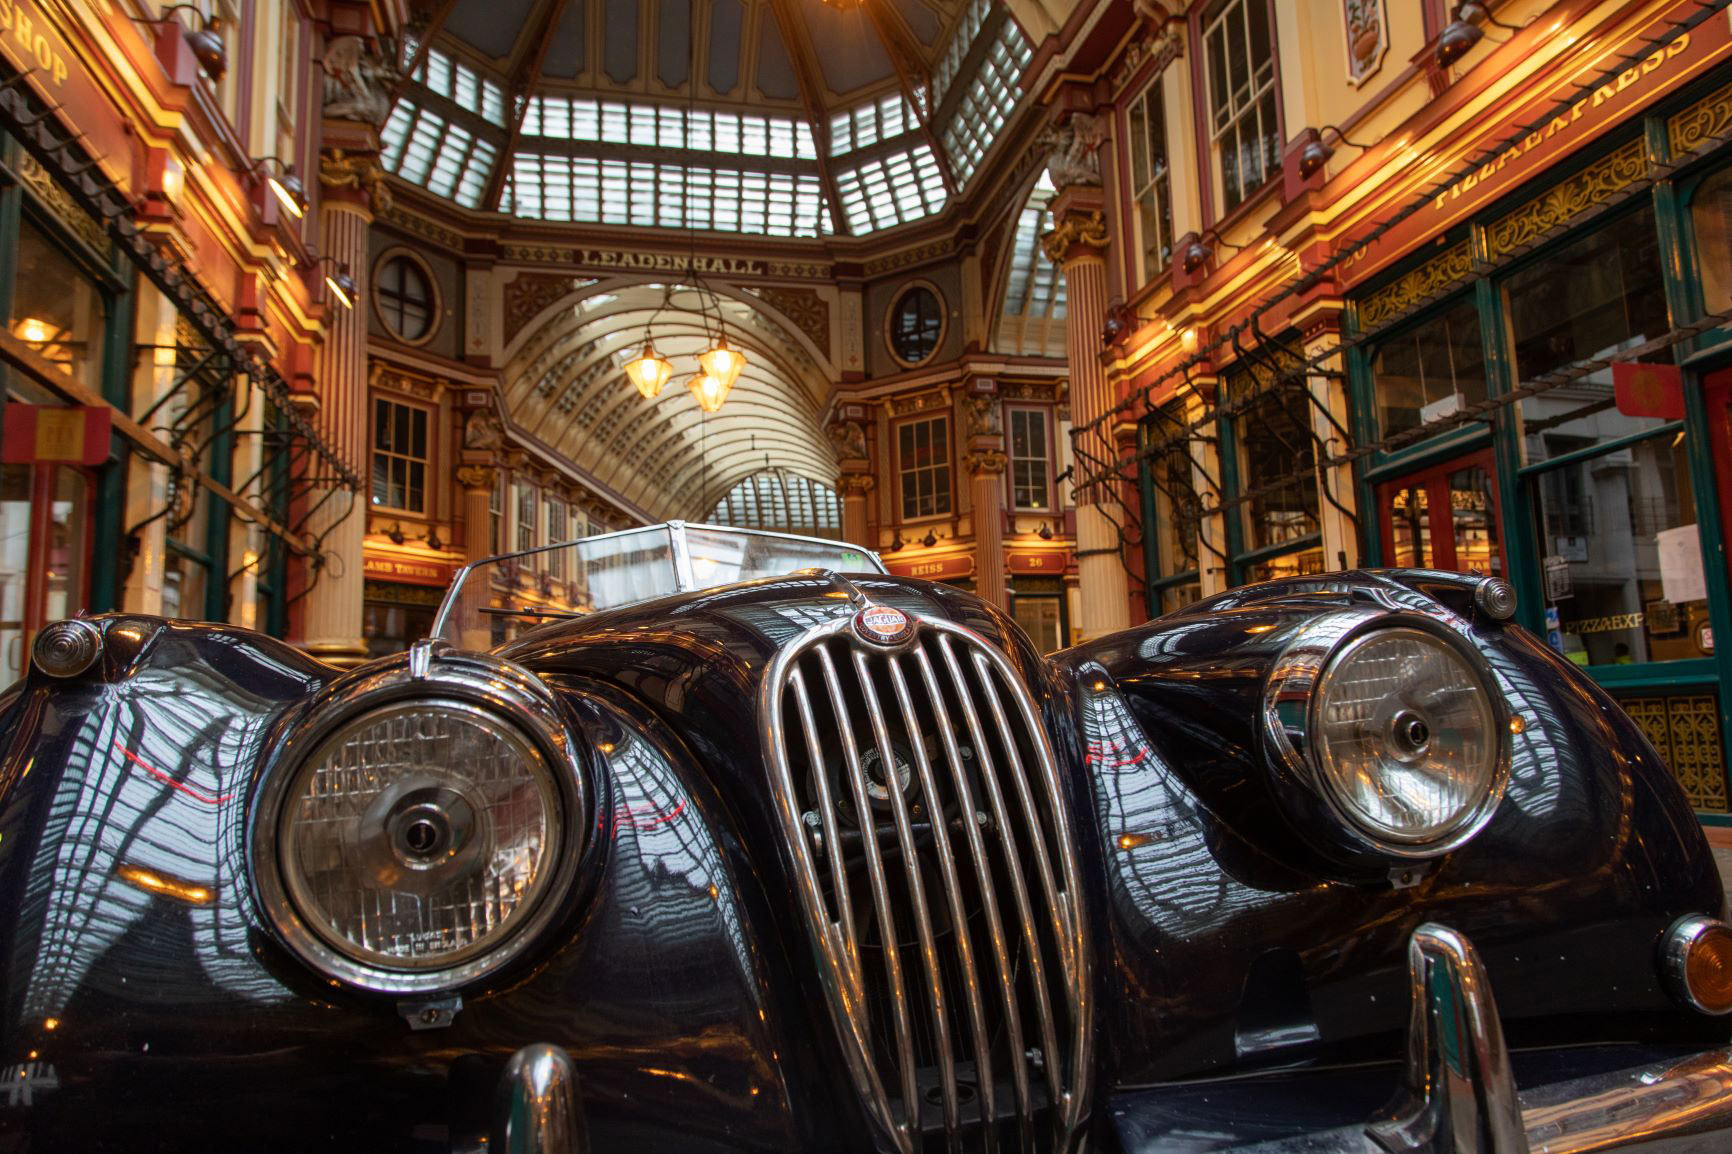 Lloyd's Classic Cars in Leadenhall Market